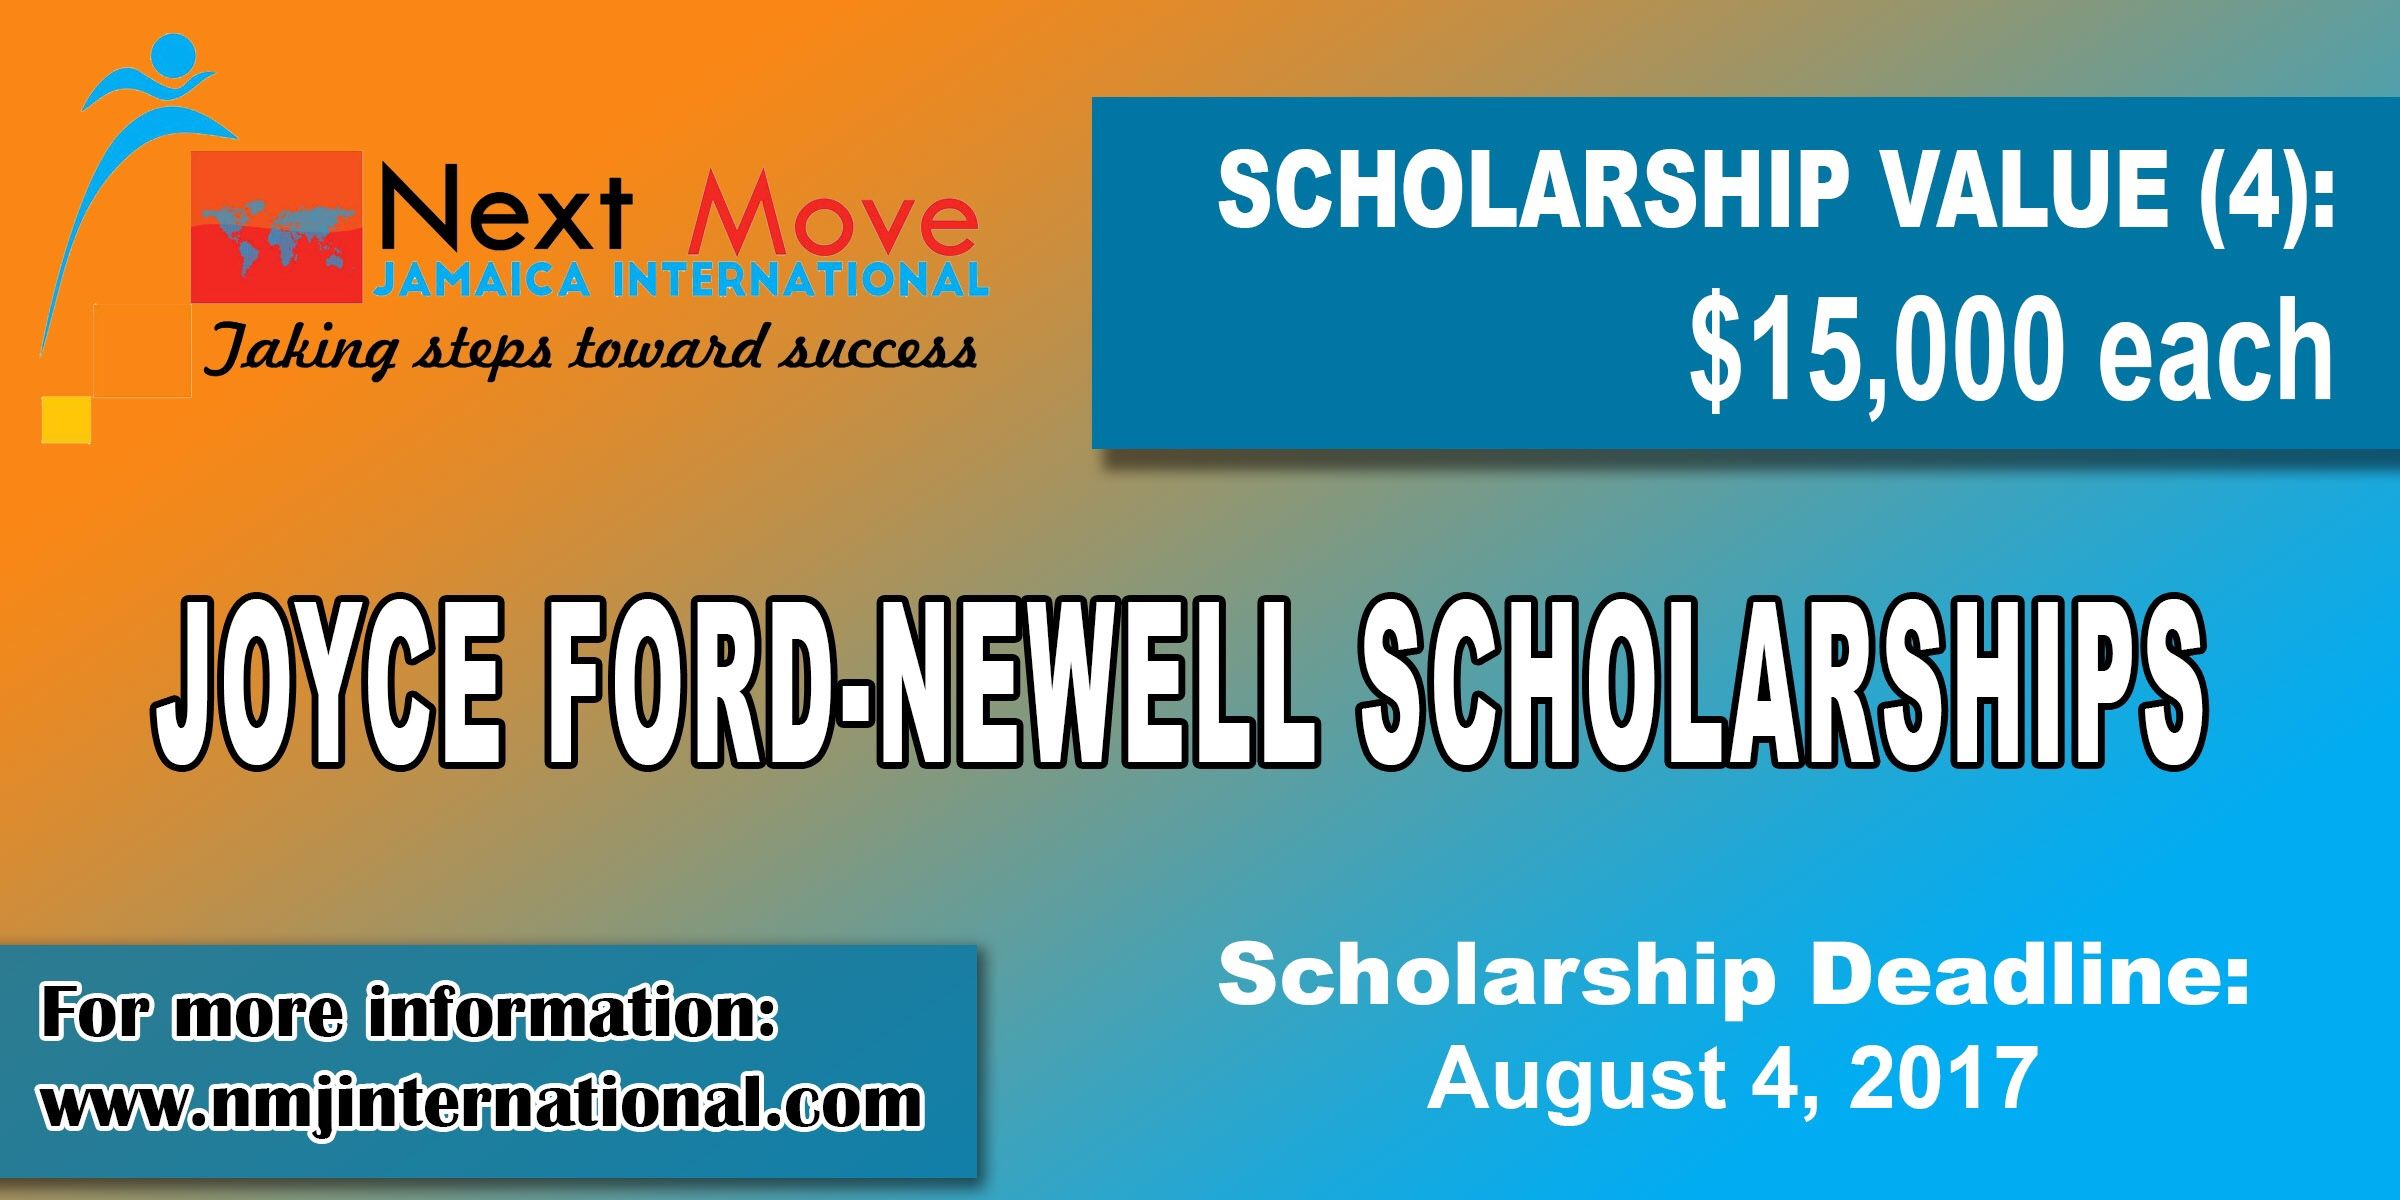 Joyce Ford Newell Scholarships from NMJ International. The